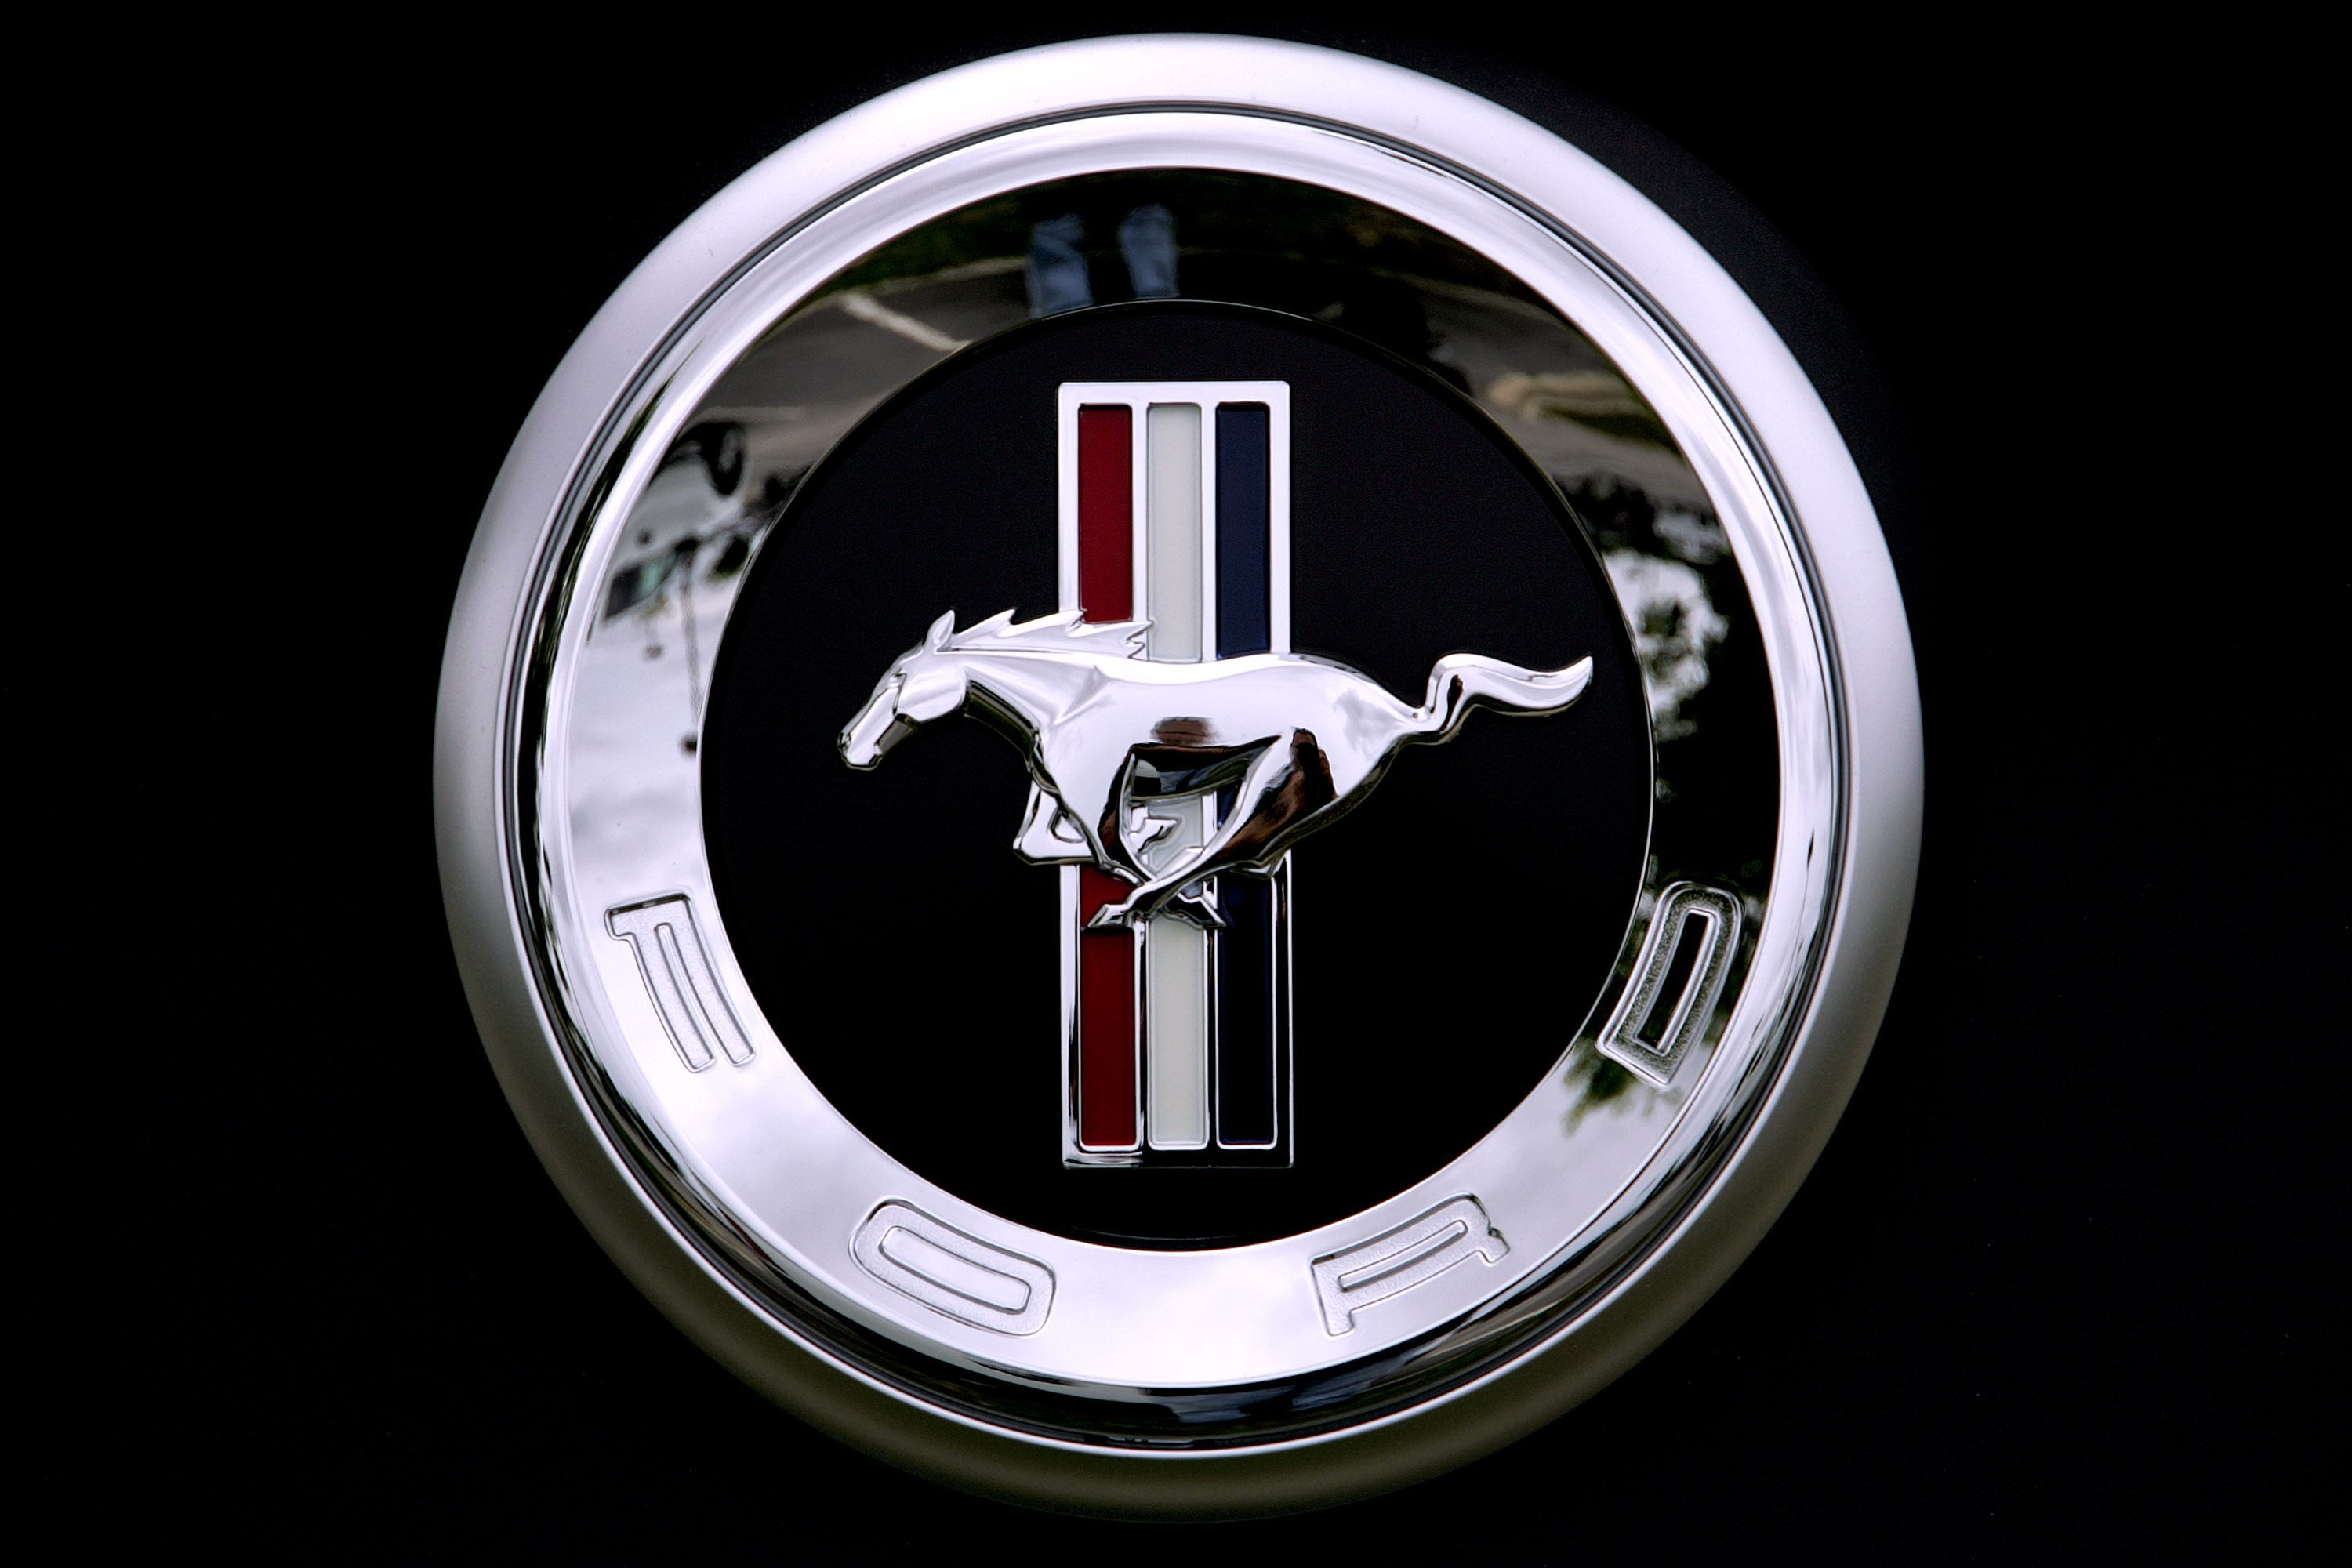 Mustang Logo Wallpaper Photo Clx Cars Pinterest